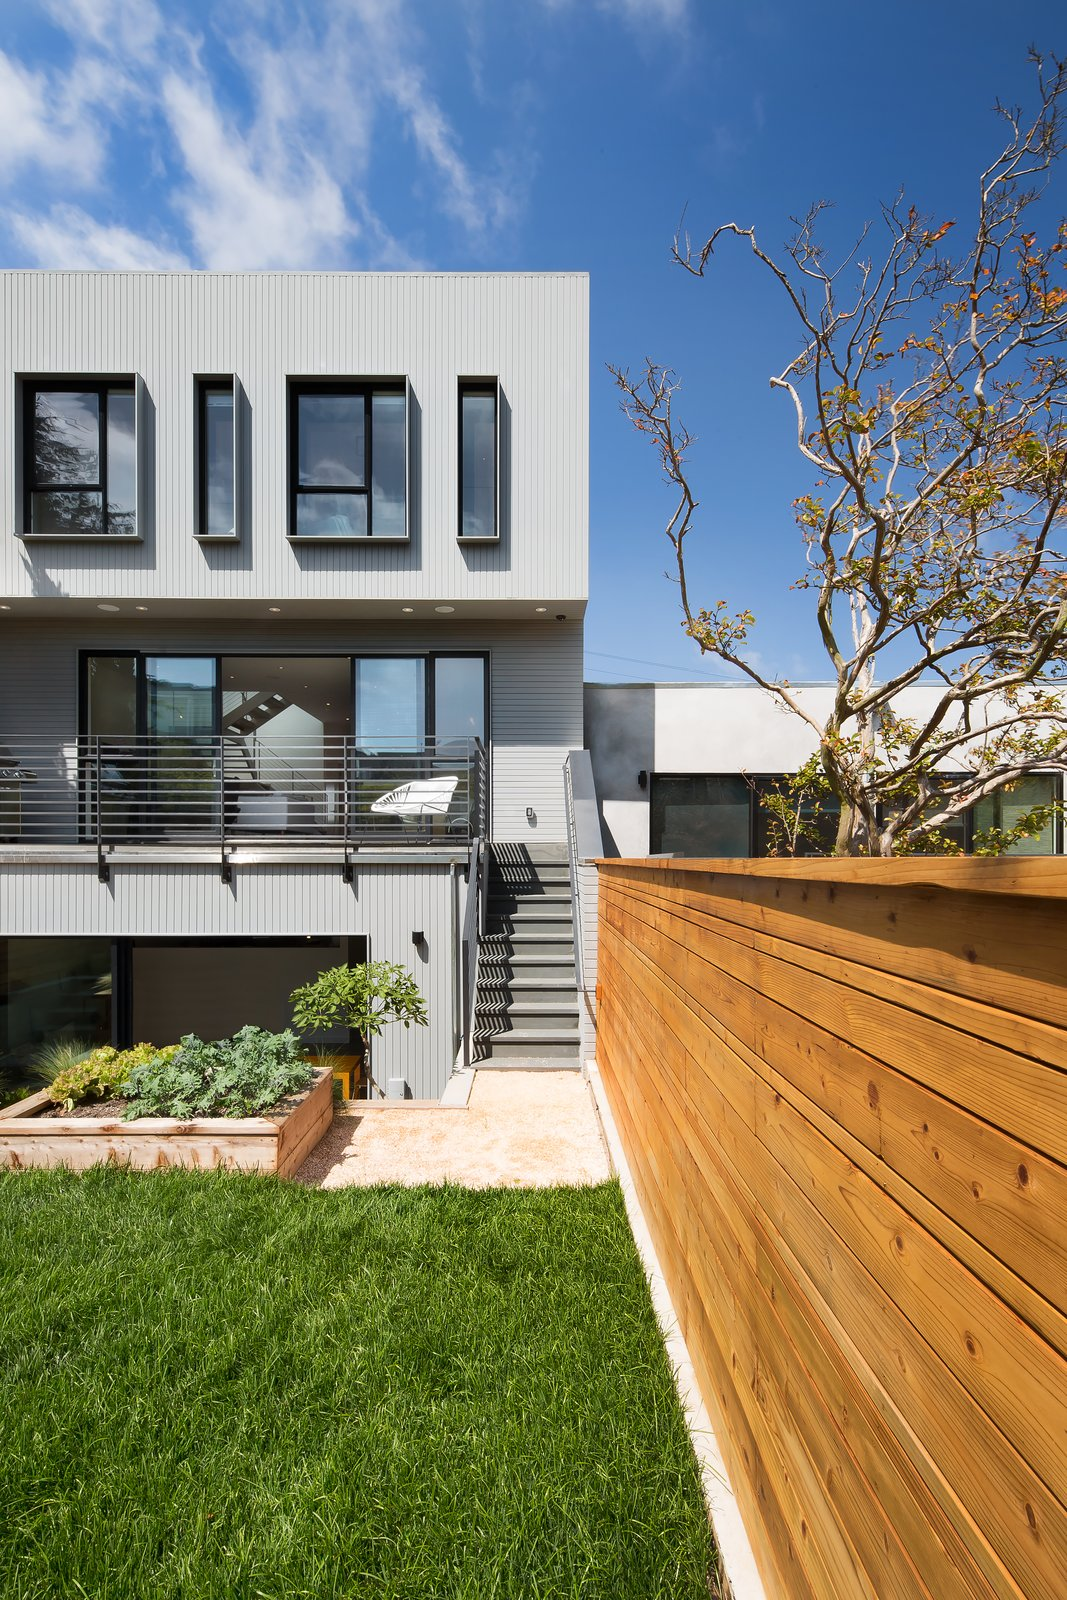 Exterior and House Building Type Rear facade  27th Street - Noe Valley by patrick perez/designpad architecture